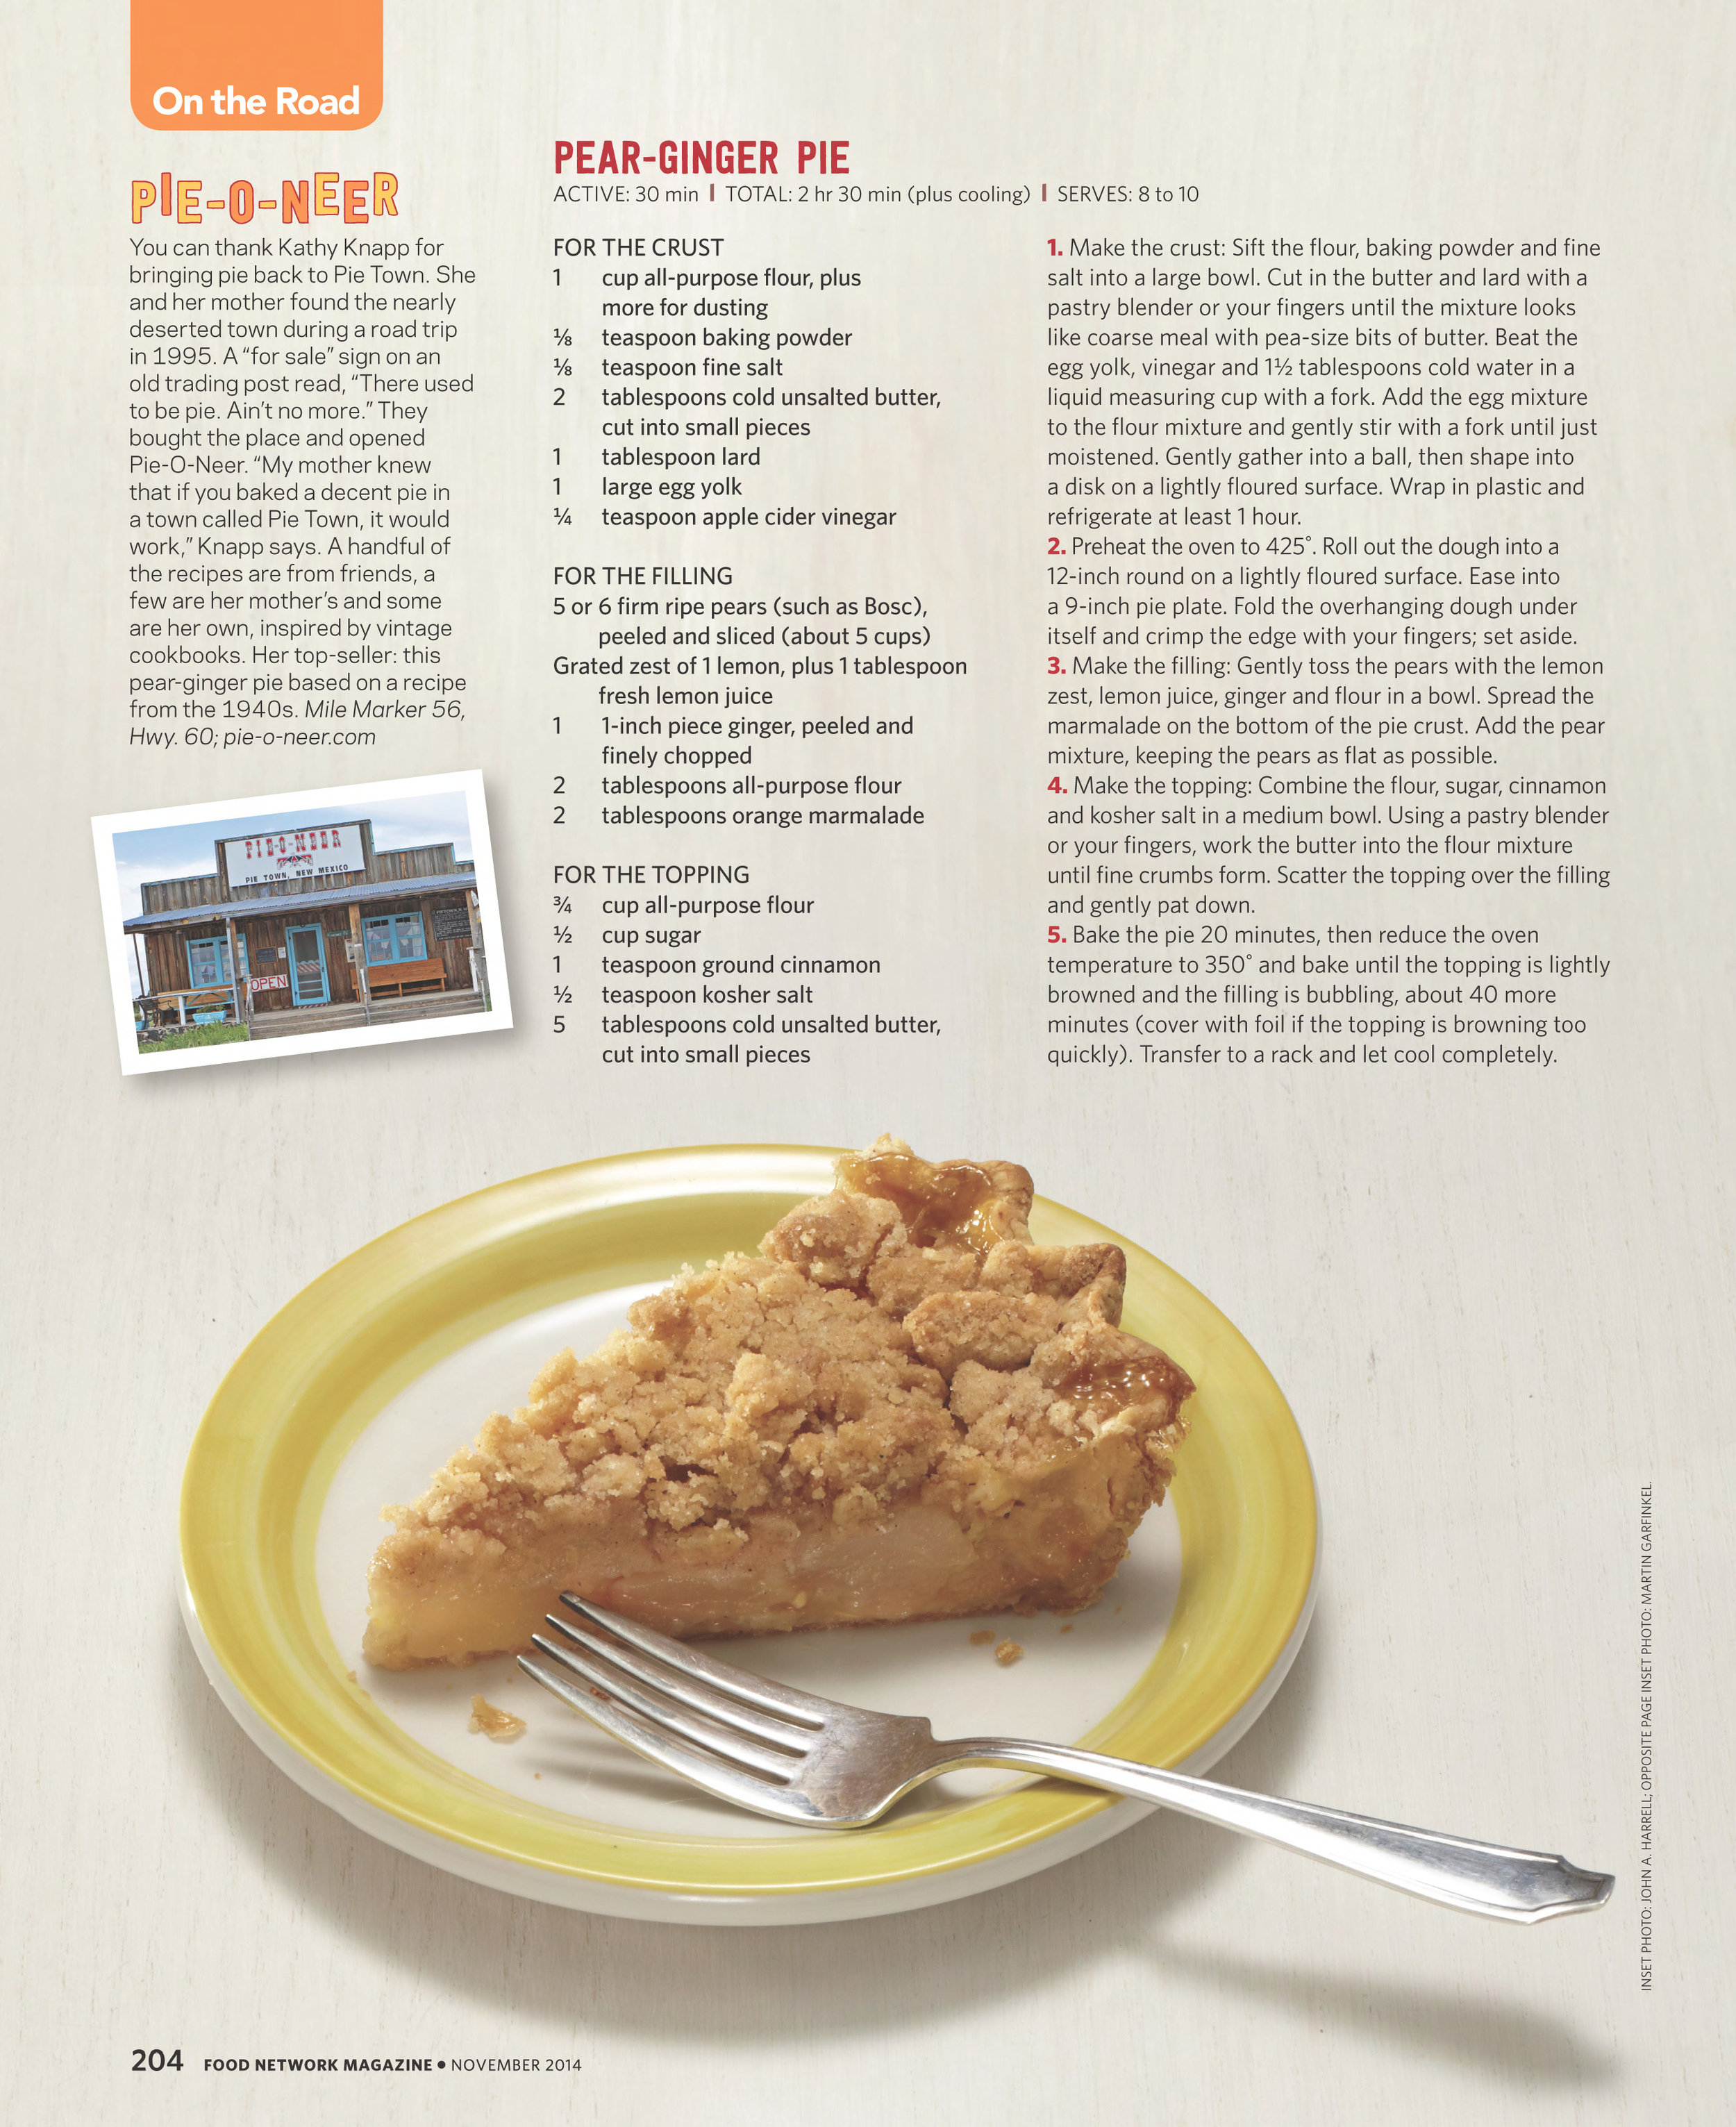 Pear-Ginger Pie Photograph by Devon Jarvis for Food Network Magazine